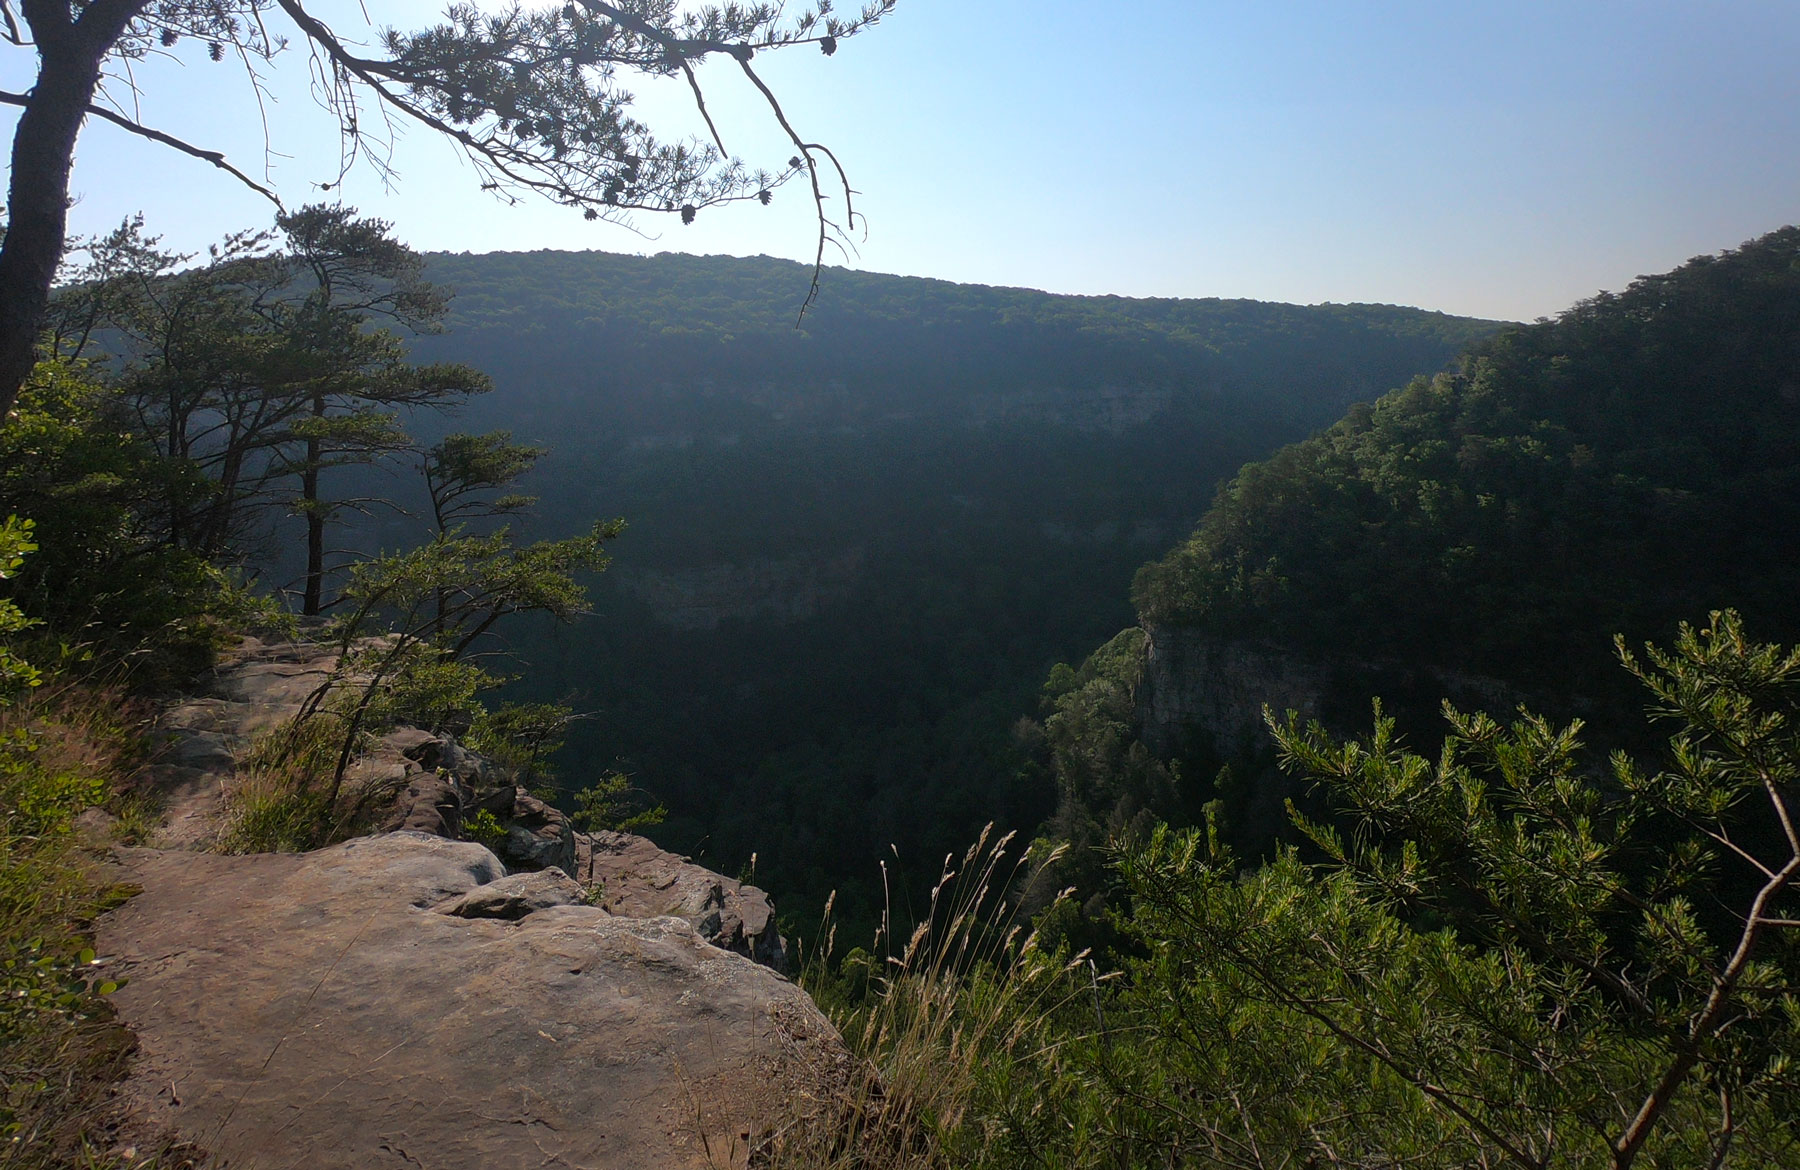 Hiking the West Rim Loop Trail at the overlook at Cloudland Canyon State Park, Georgia